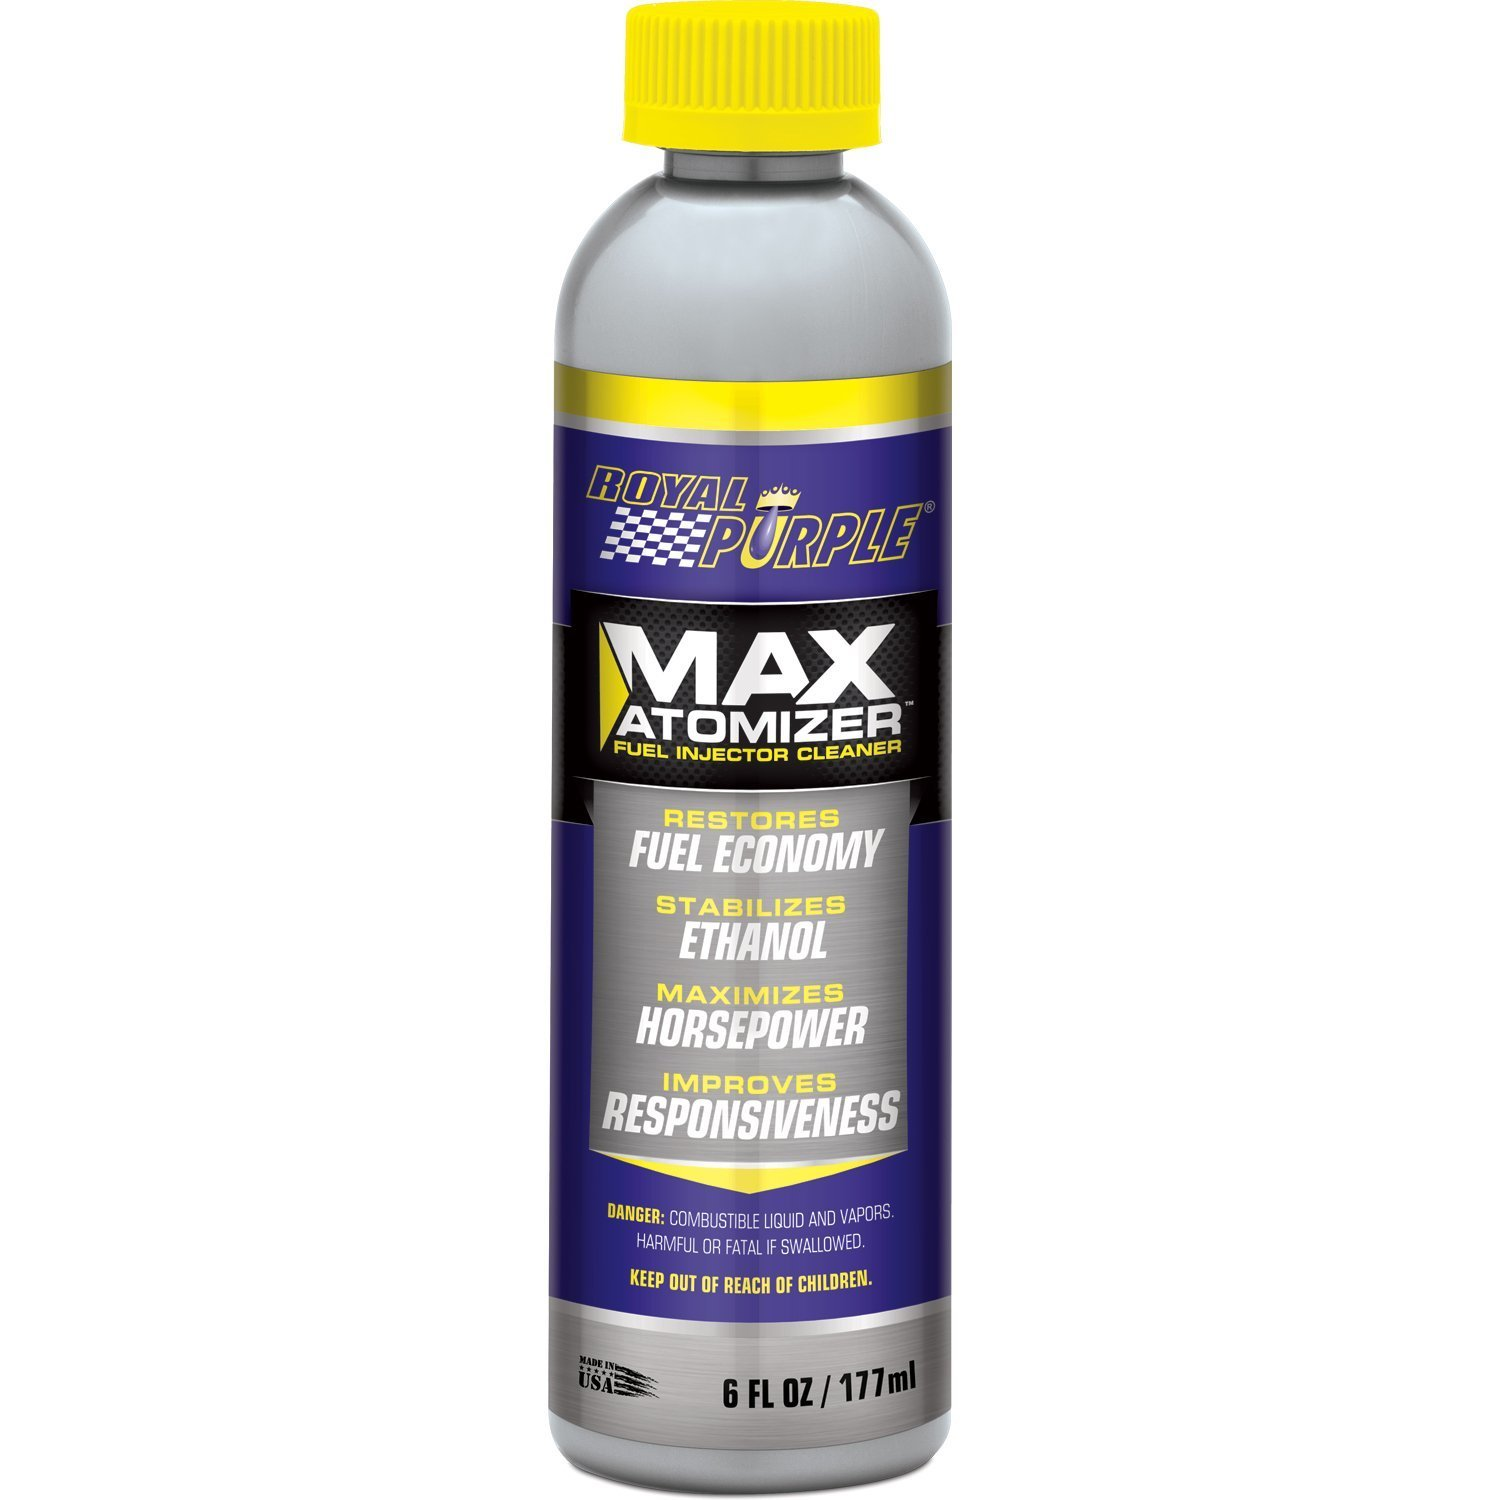 Royal Purple 18000 Max Atomizer Fuel Injector Cleaner - 6 oz. (12) by Royal Purple